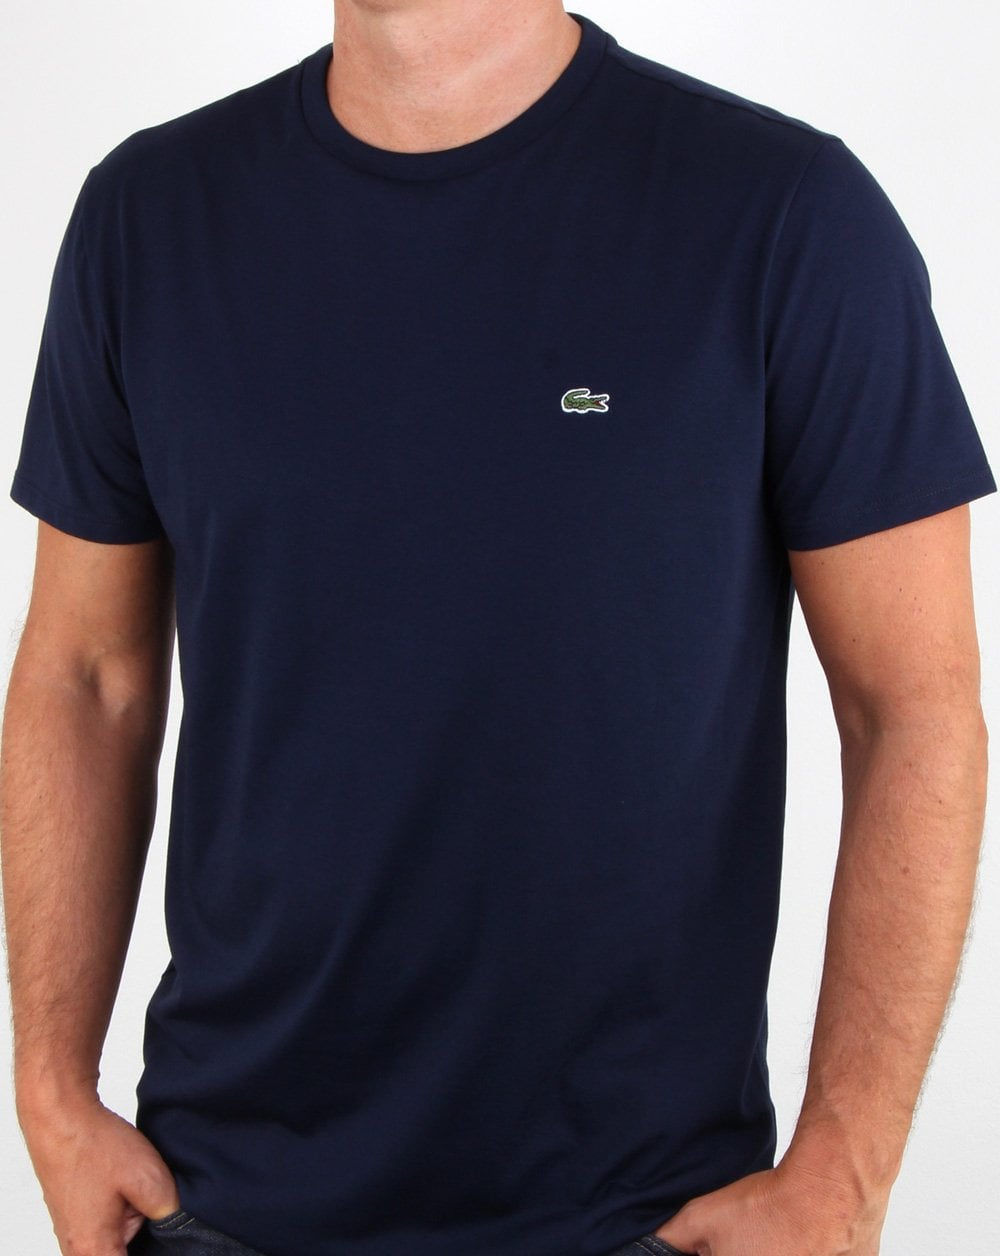 682400afcb29 Lacoste T-shirt Navy, lacoste, tee, casual,